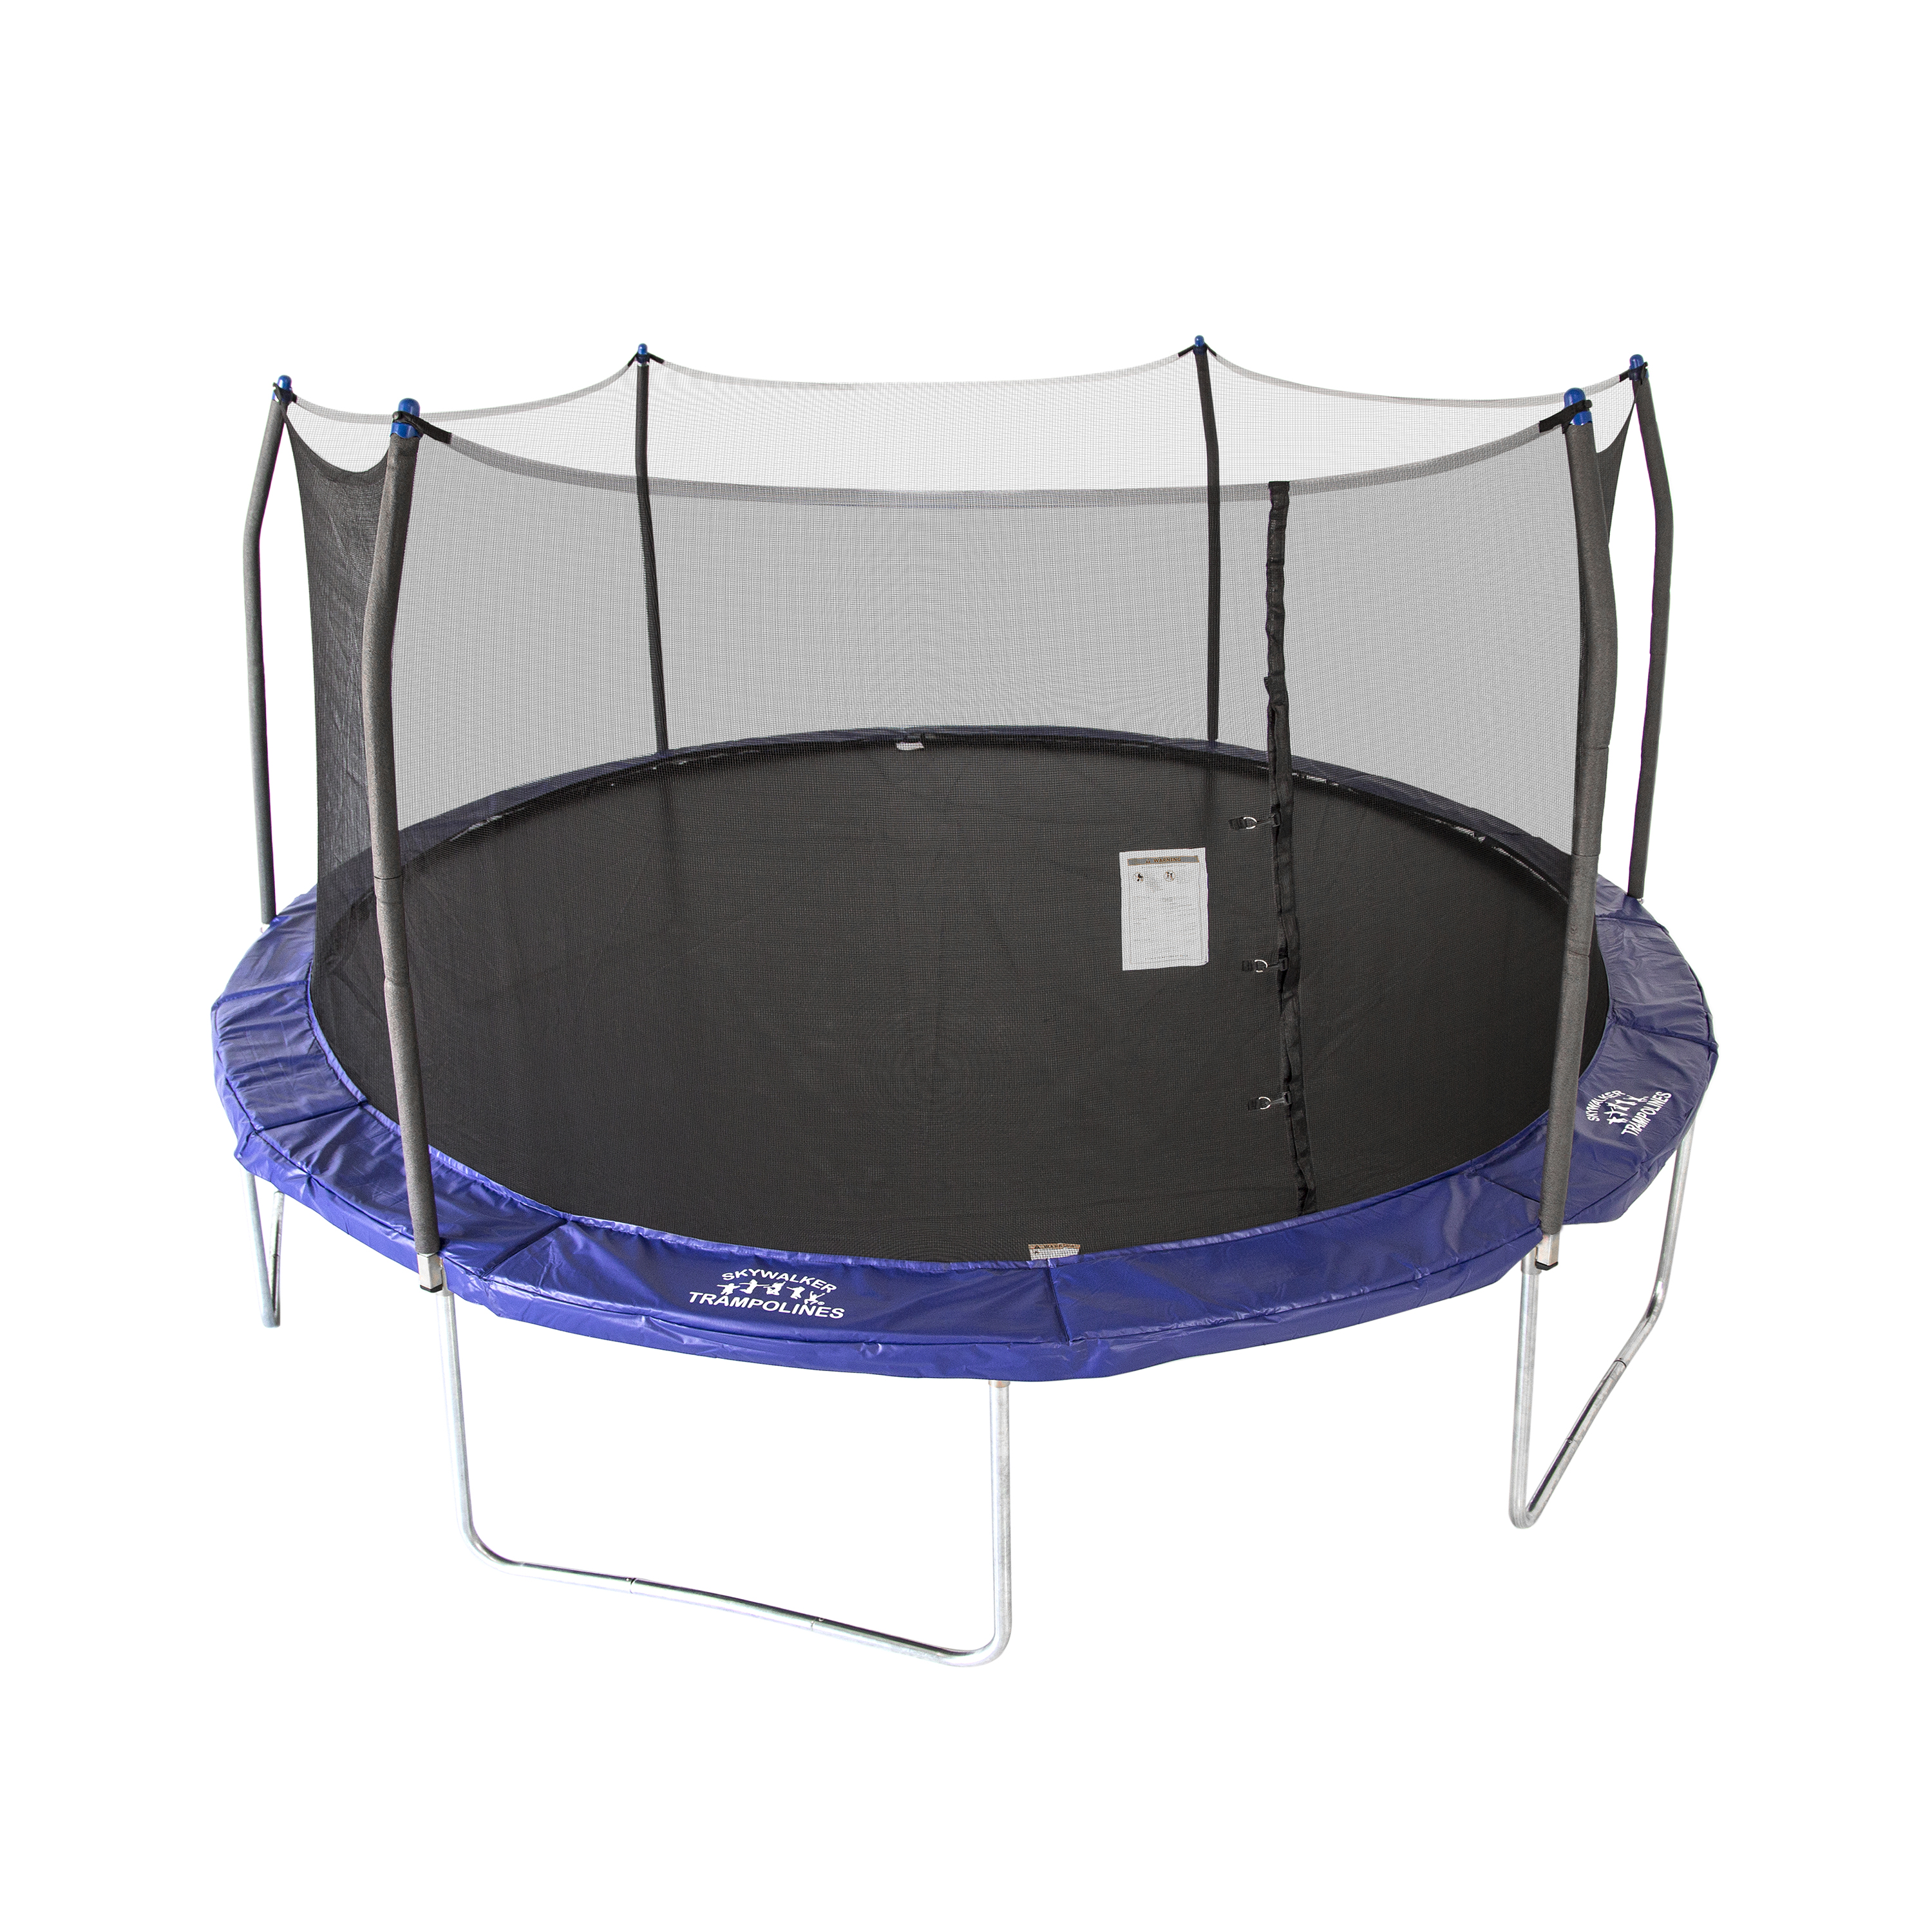 Skywalker Trampolines Oval 16-Foot Trampoline, with Safety Enclosure, Blue